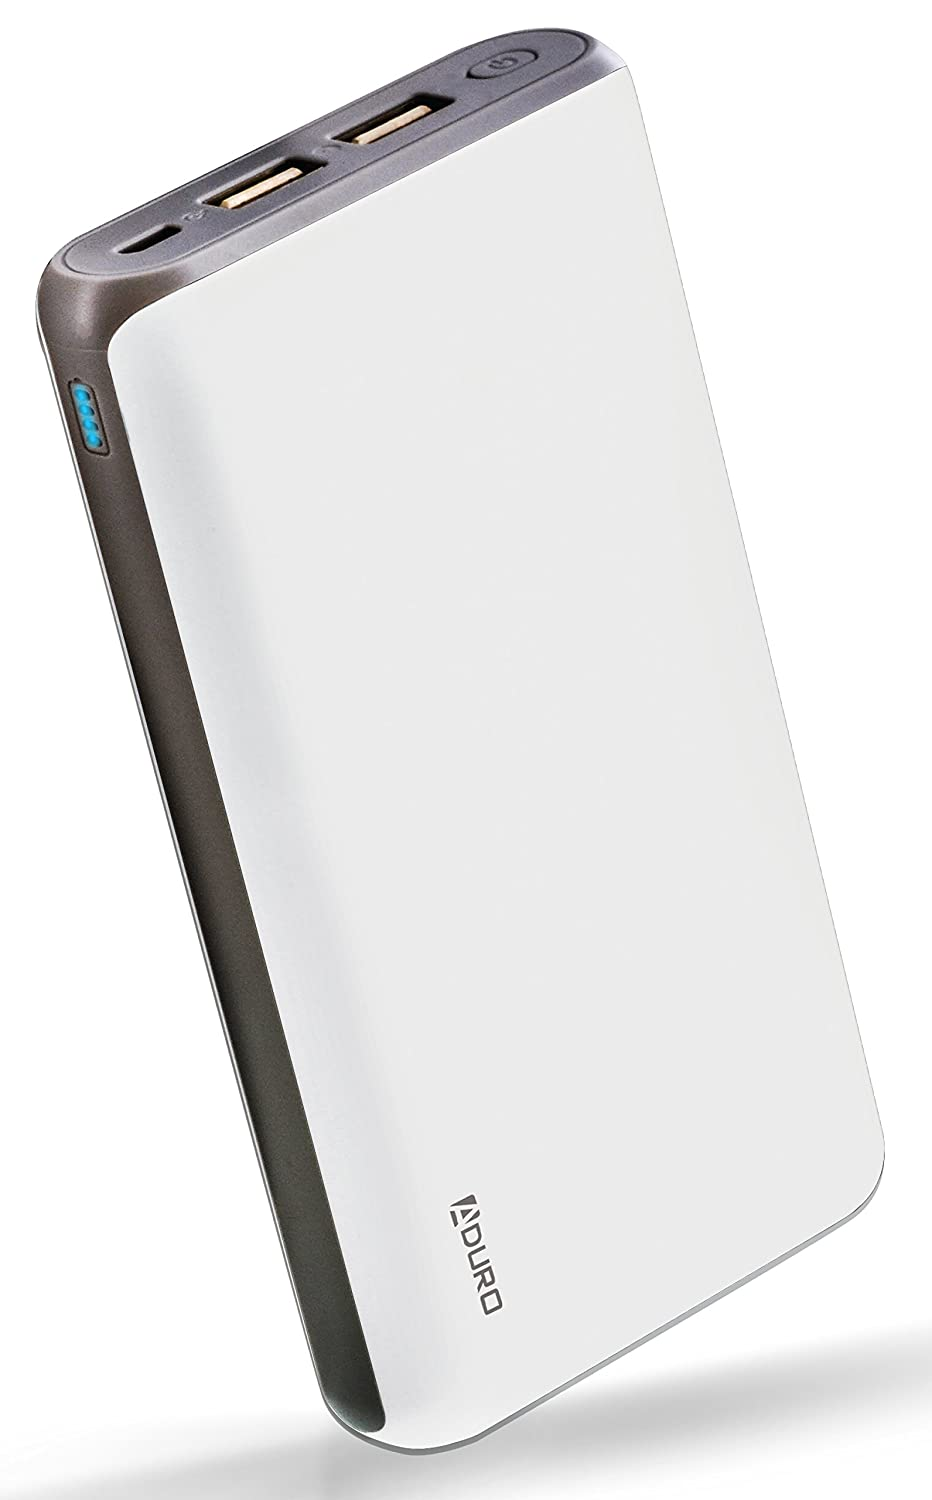 Aduro 20,000mAh Battery Pack Power Bank, External Battery Charger for iPhone Android Smartphone Tablet Portable Power Backup Charges Any USB Device (White)